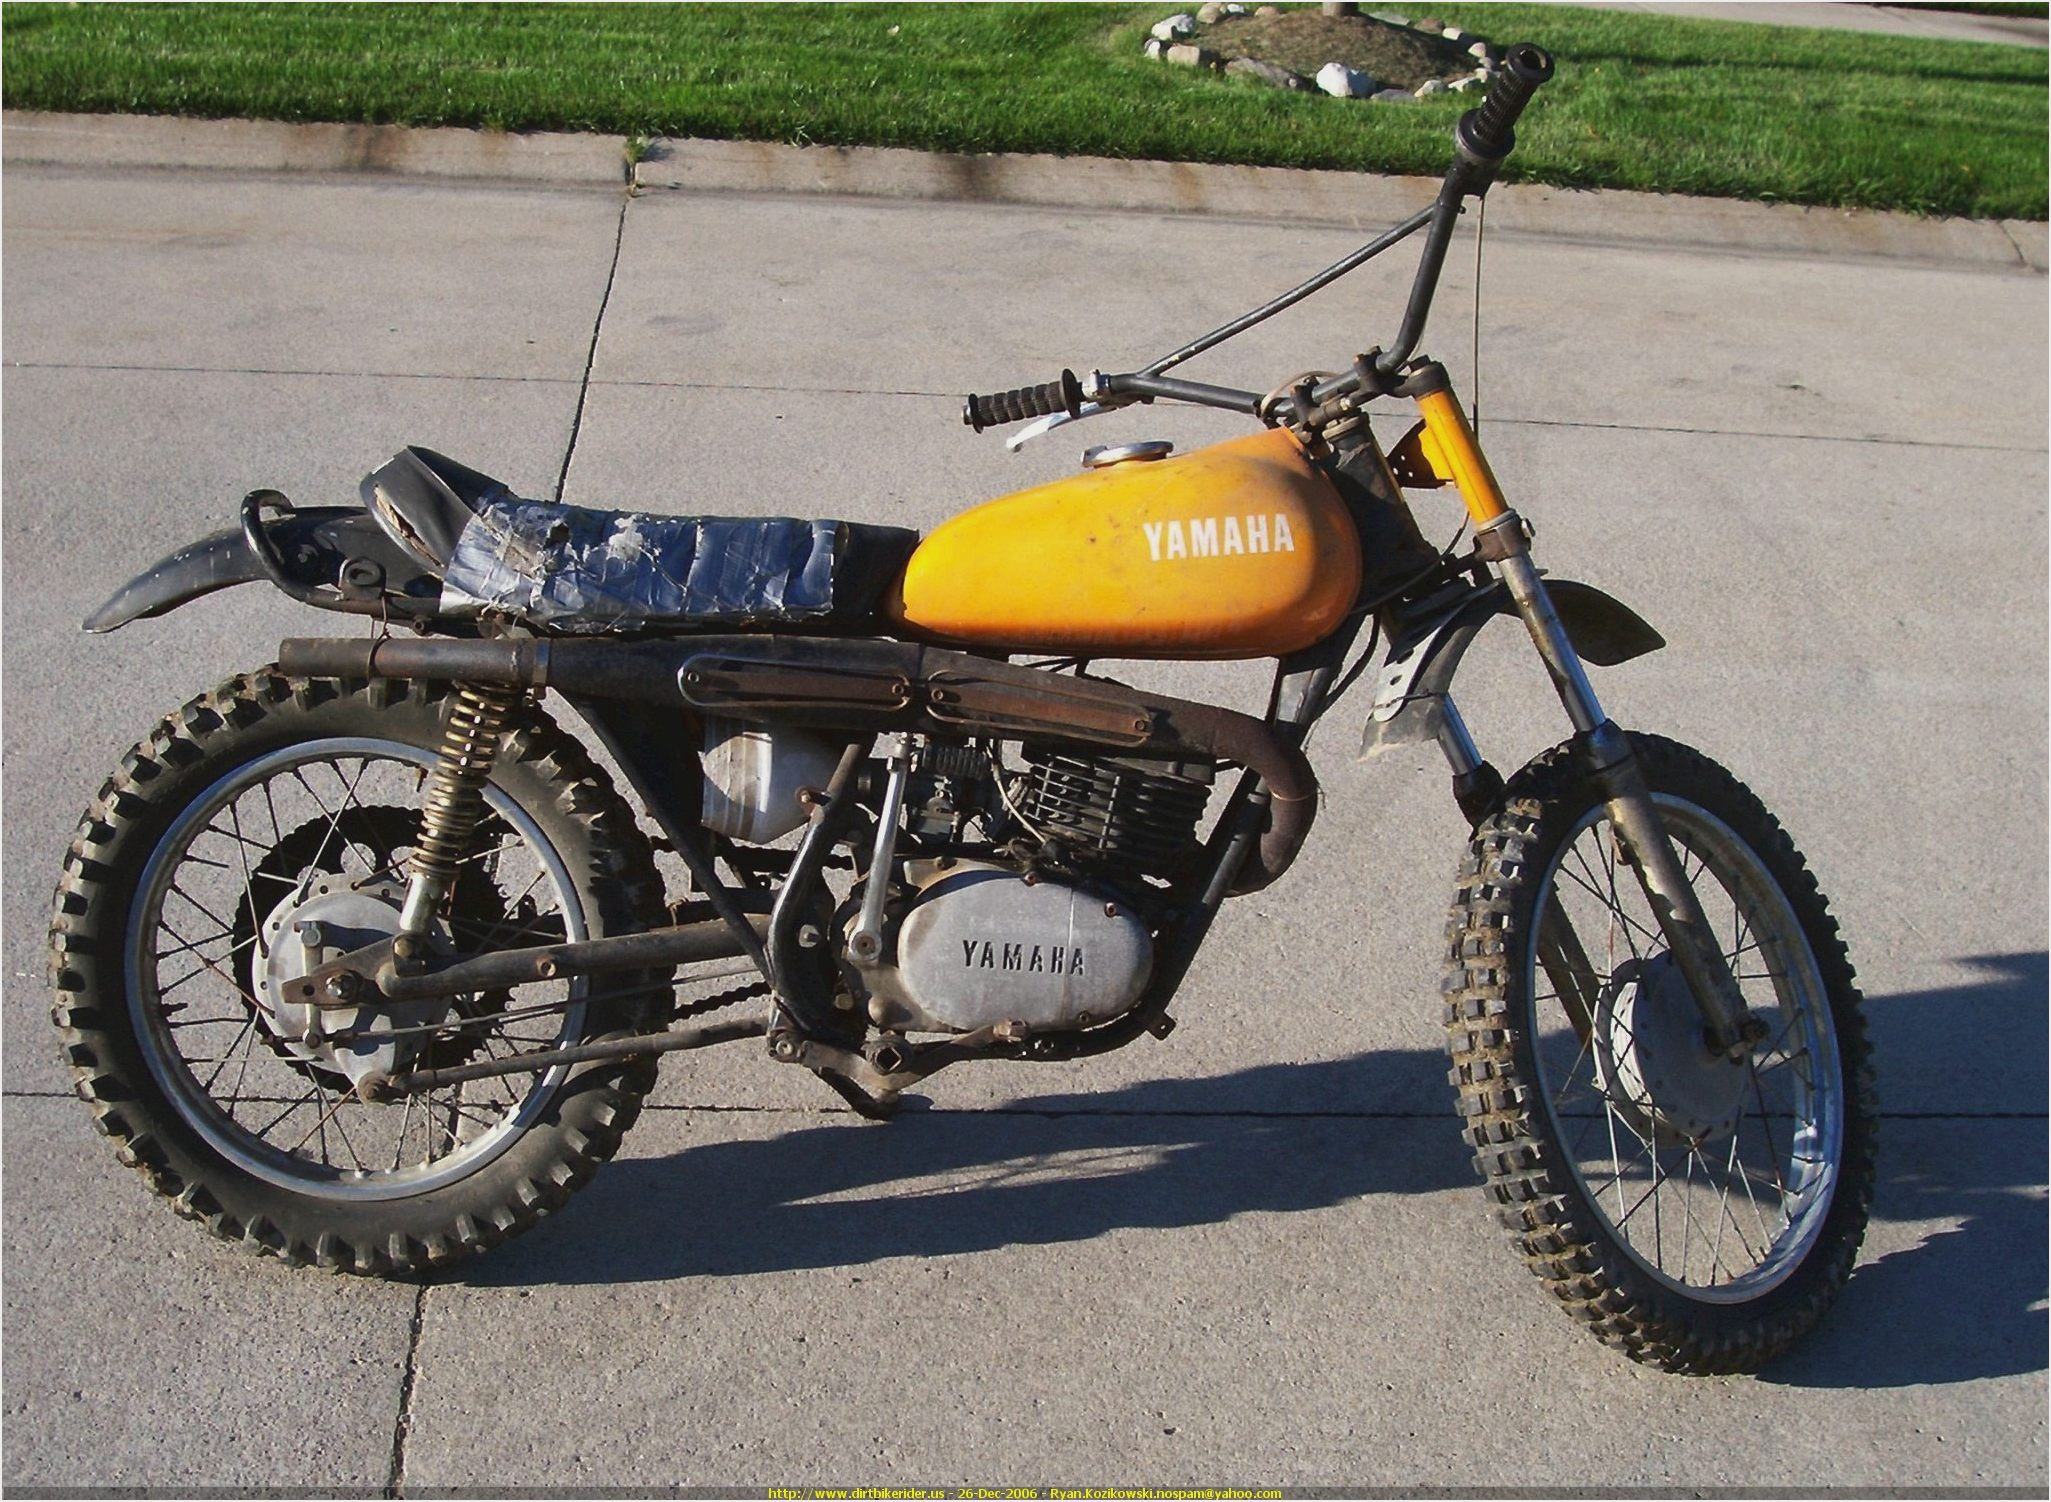 1973 Yamaha Dt250 Wiring Diagram Trusted Schematics Dt 125 Mx 1977 U2022 For Free 250 Parts